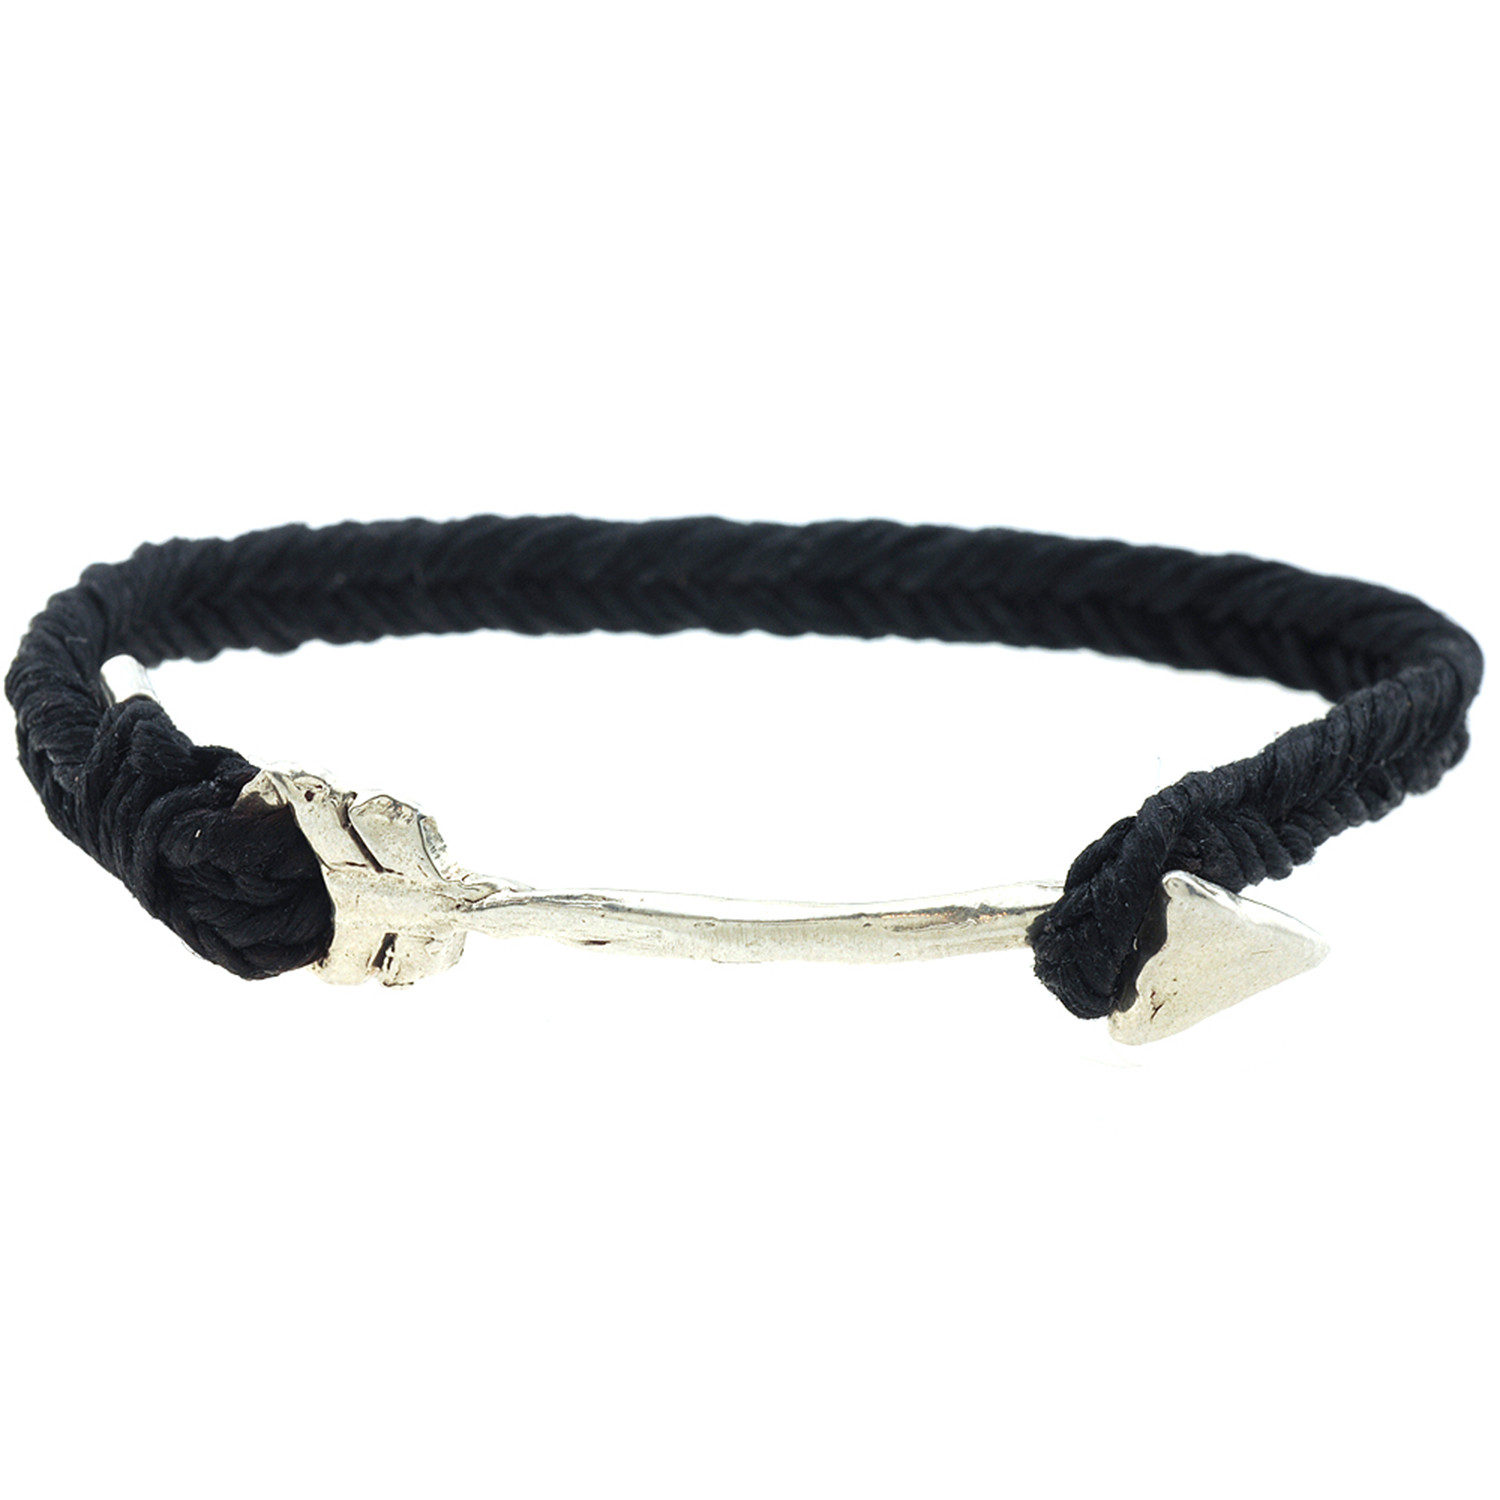 shopbop arrow v htm vp tai bracelet